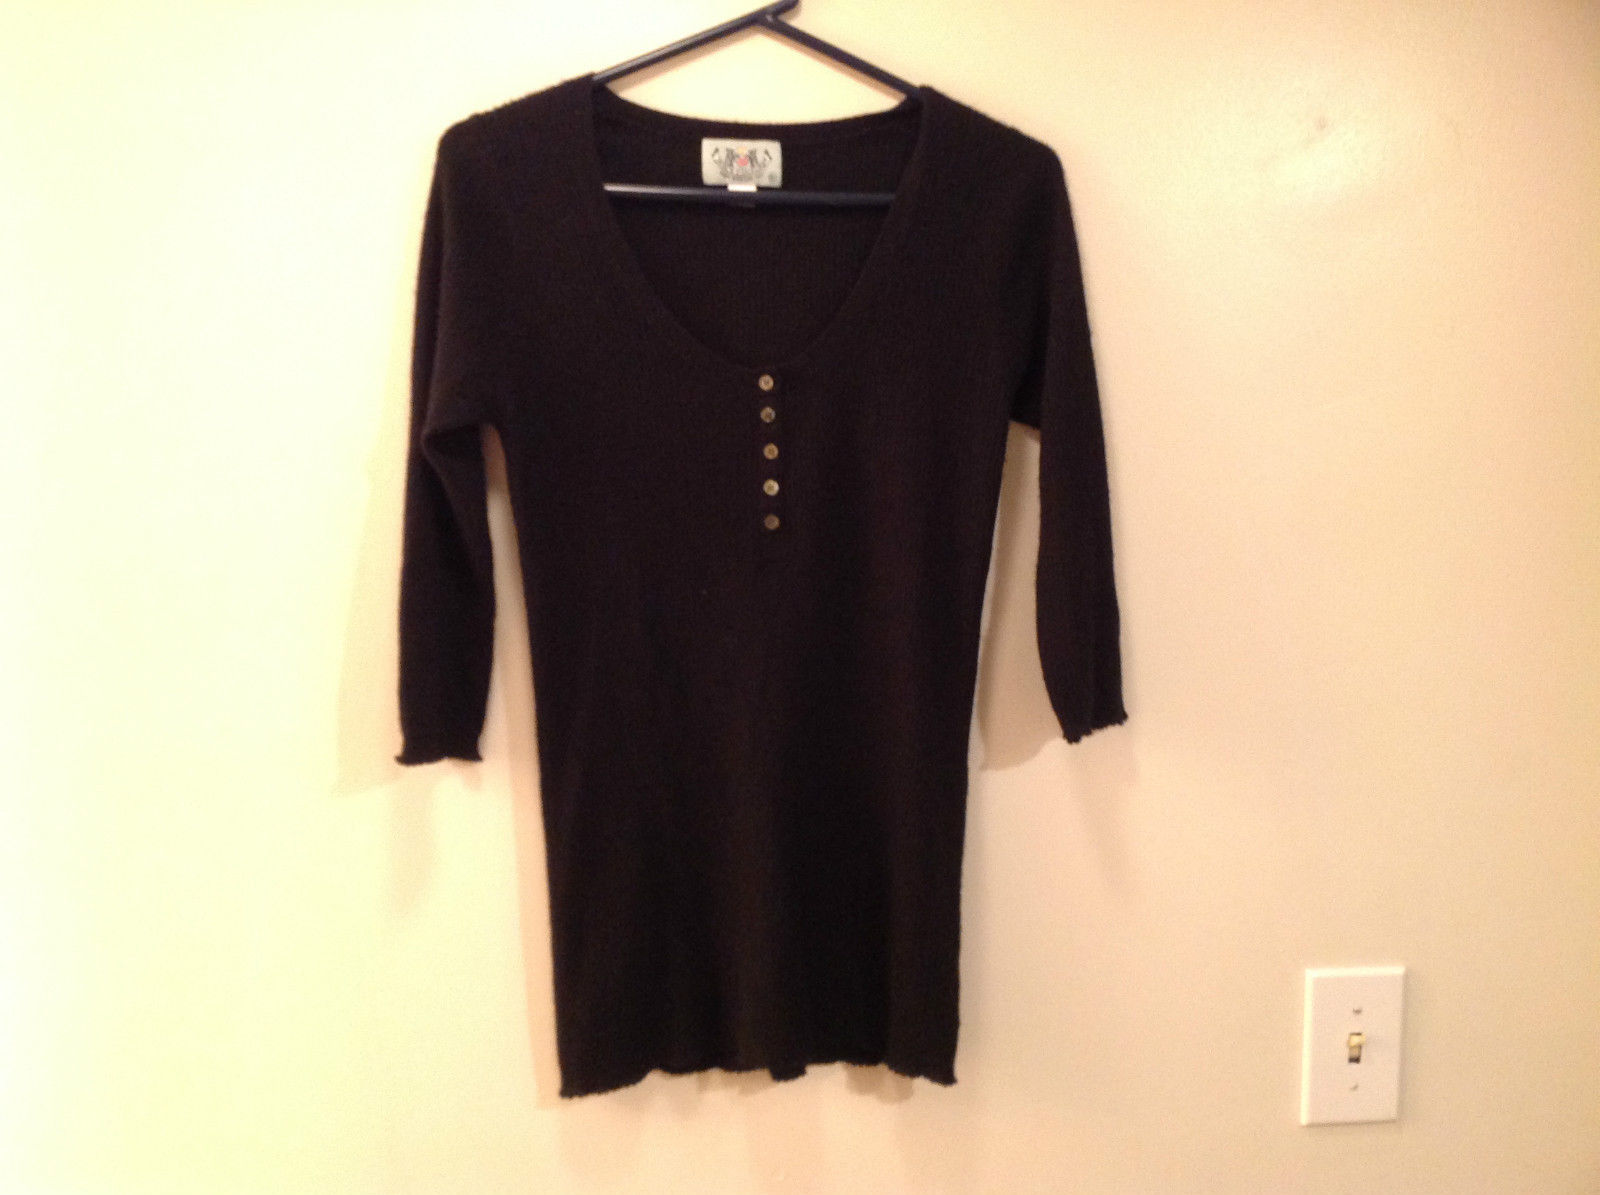 Juicy Couture Size XL Long Sleeve Black Sweater Light Material Scoop Neck